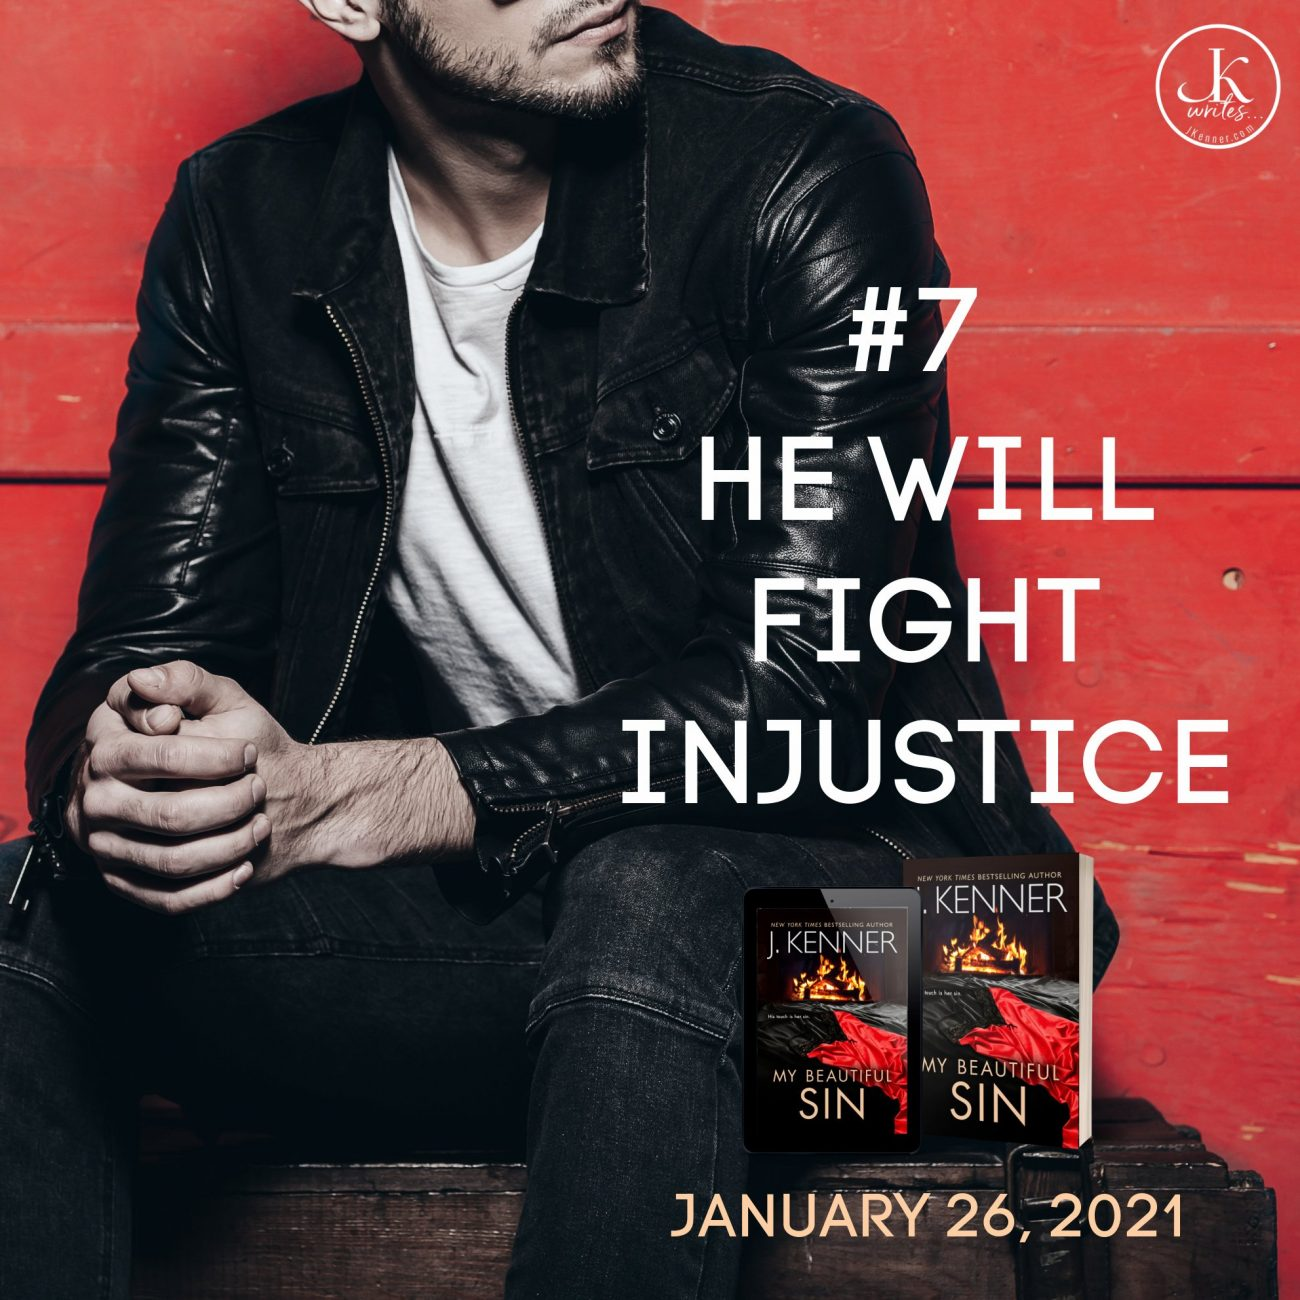 Devlin Saint will fight injustice image. My Beautiful Sin by J. kenner